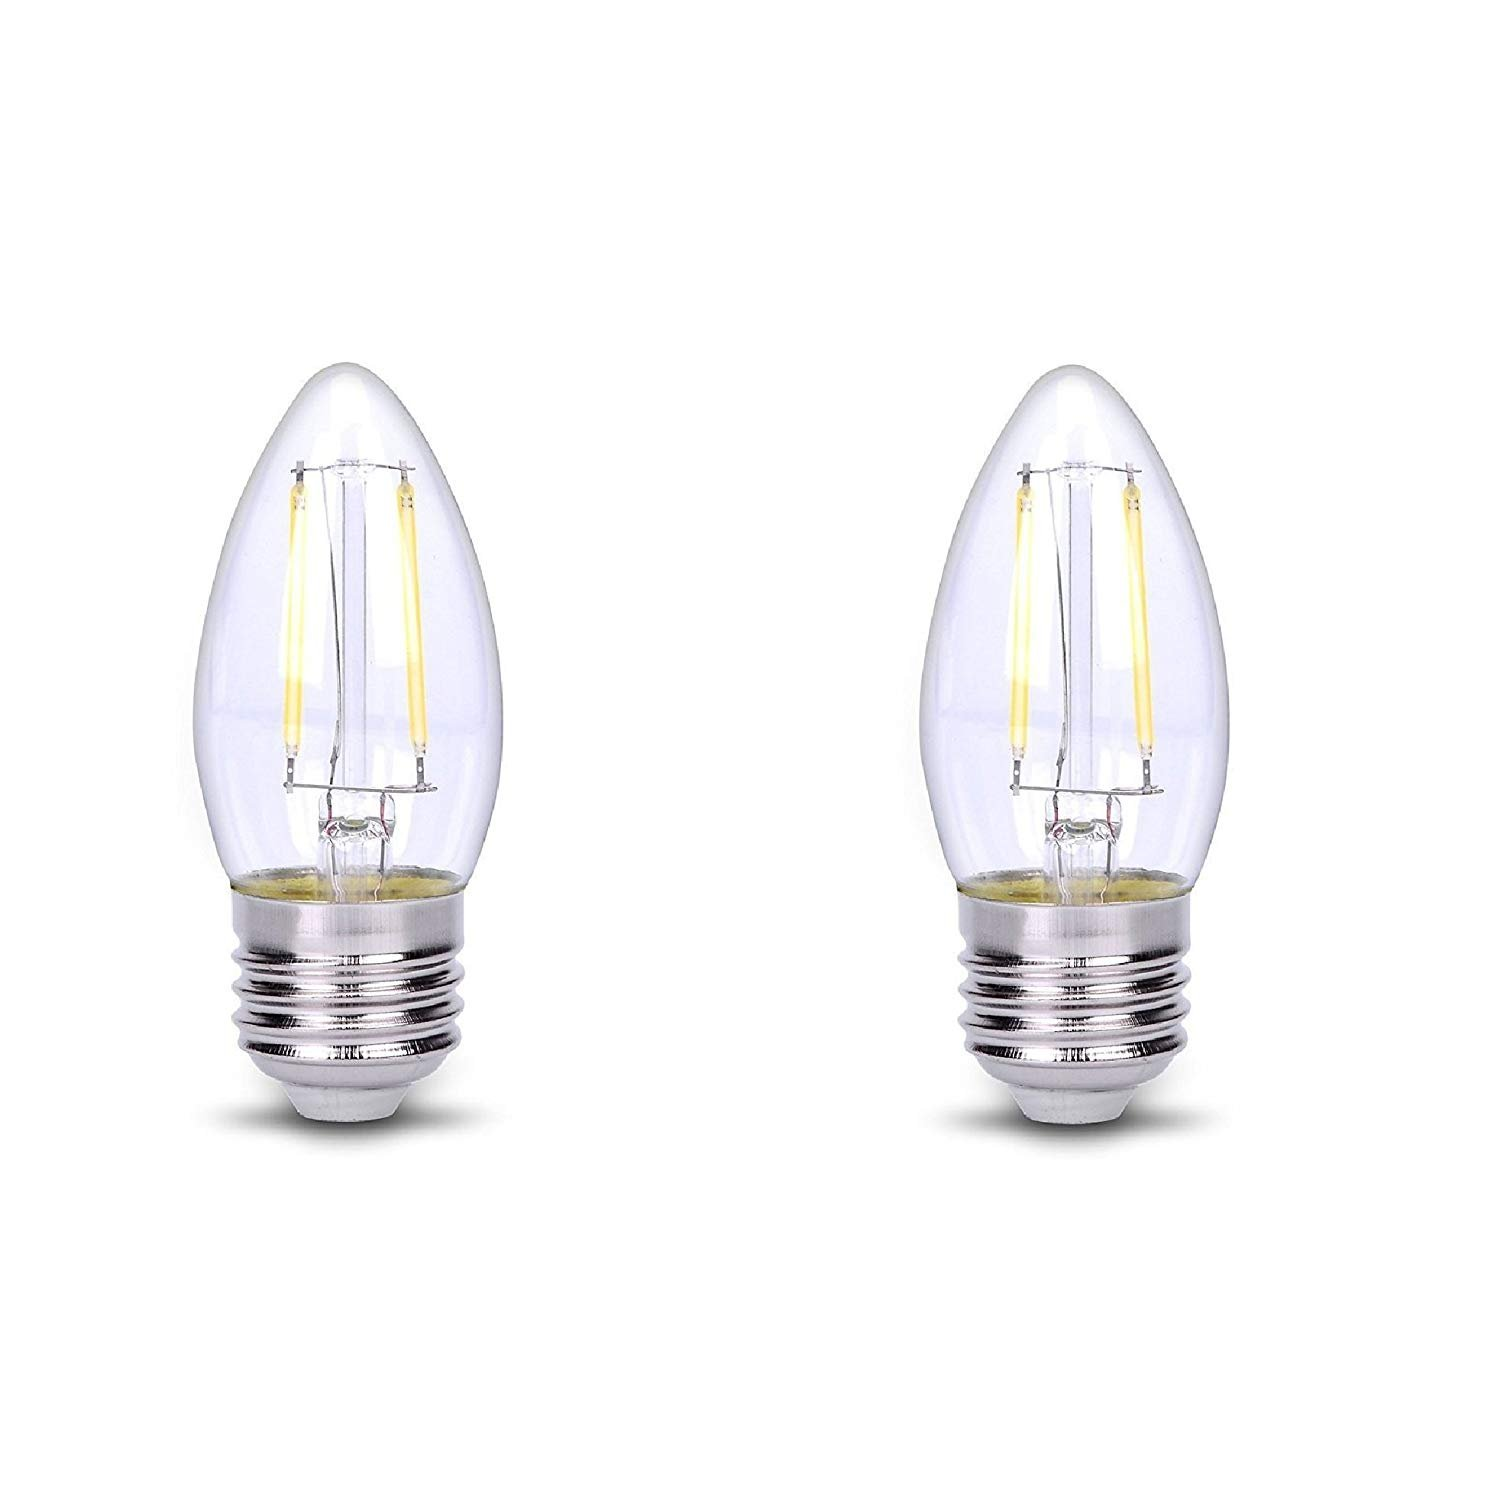 C35 LED Light Bulb E26 Base Candle Wire Filament DC 12V Low Voltage Home Fixtures Socket for Chandelier Candelabra Lamp Tear Drop Landscaping String Lighting Replacement - Cool White, 2W (Pack of 2)